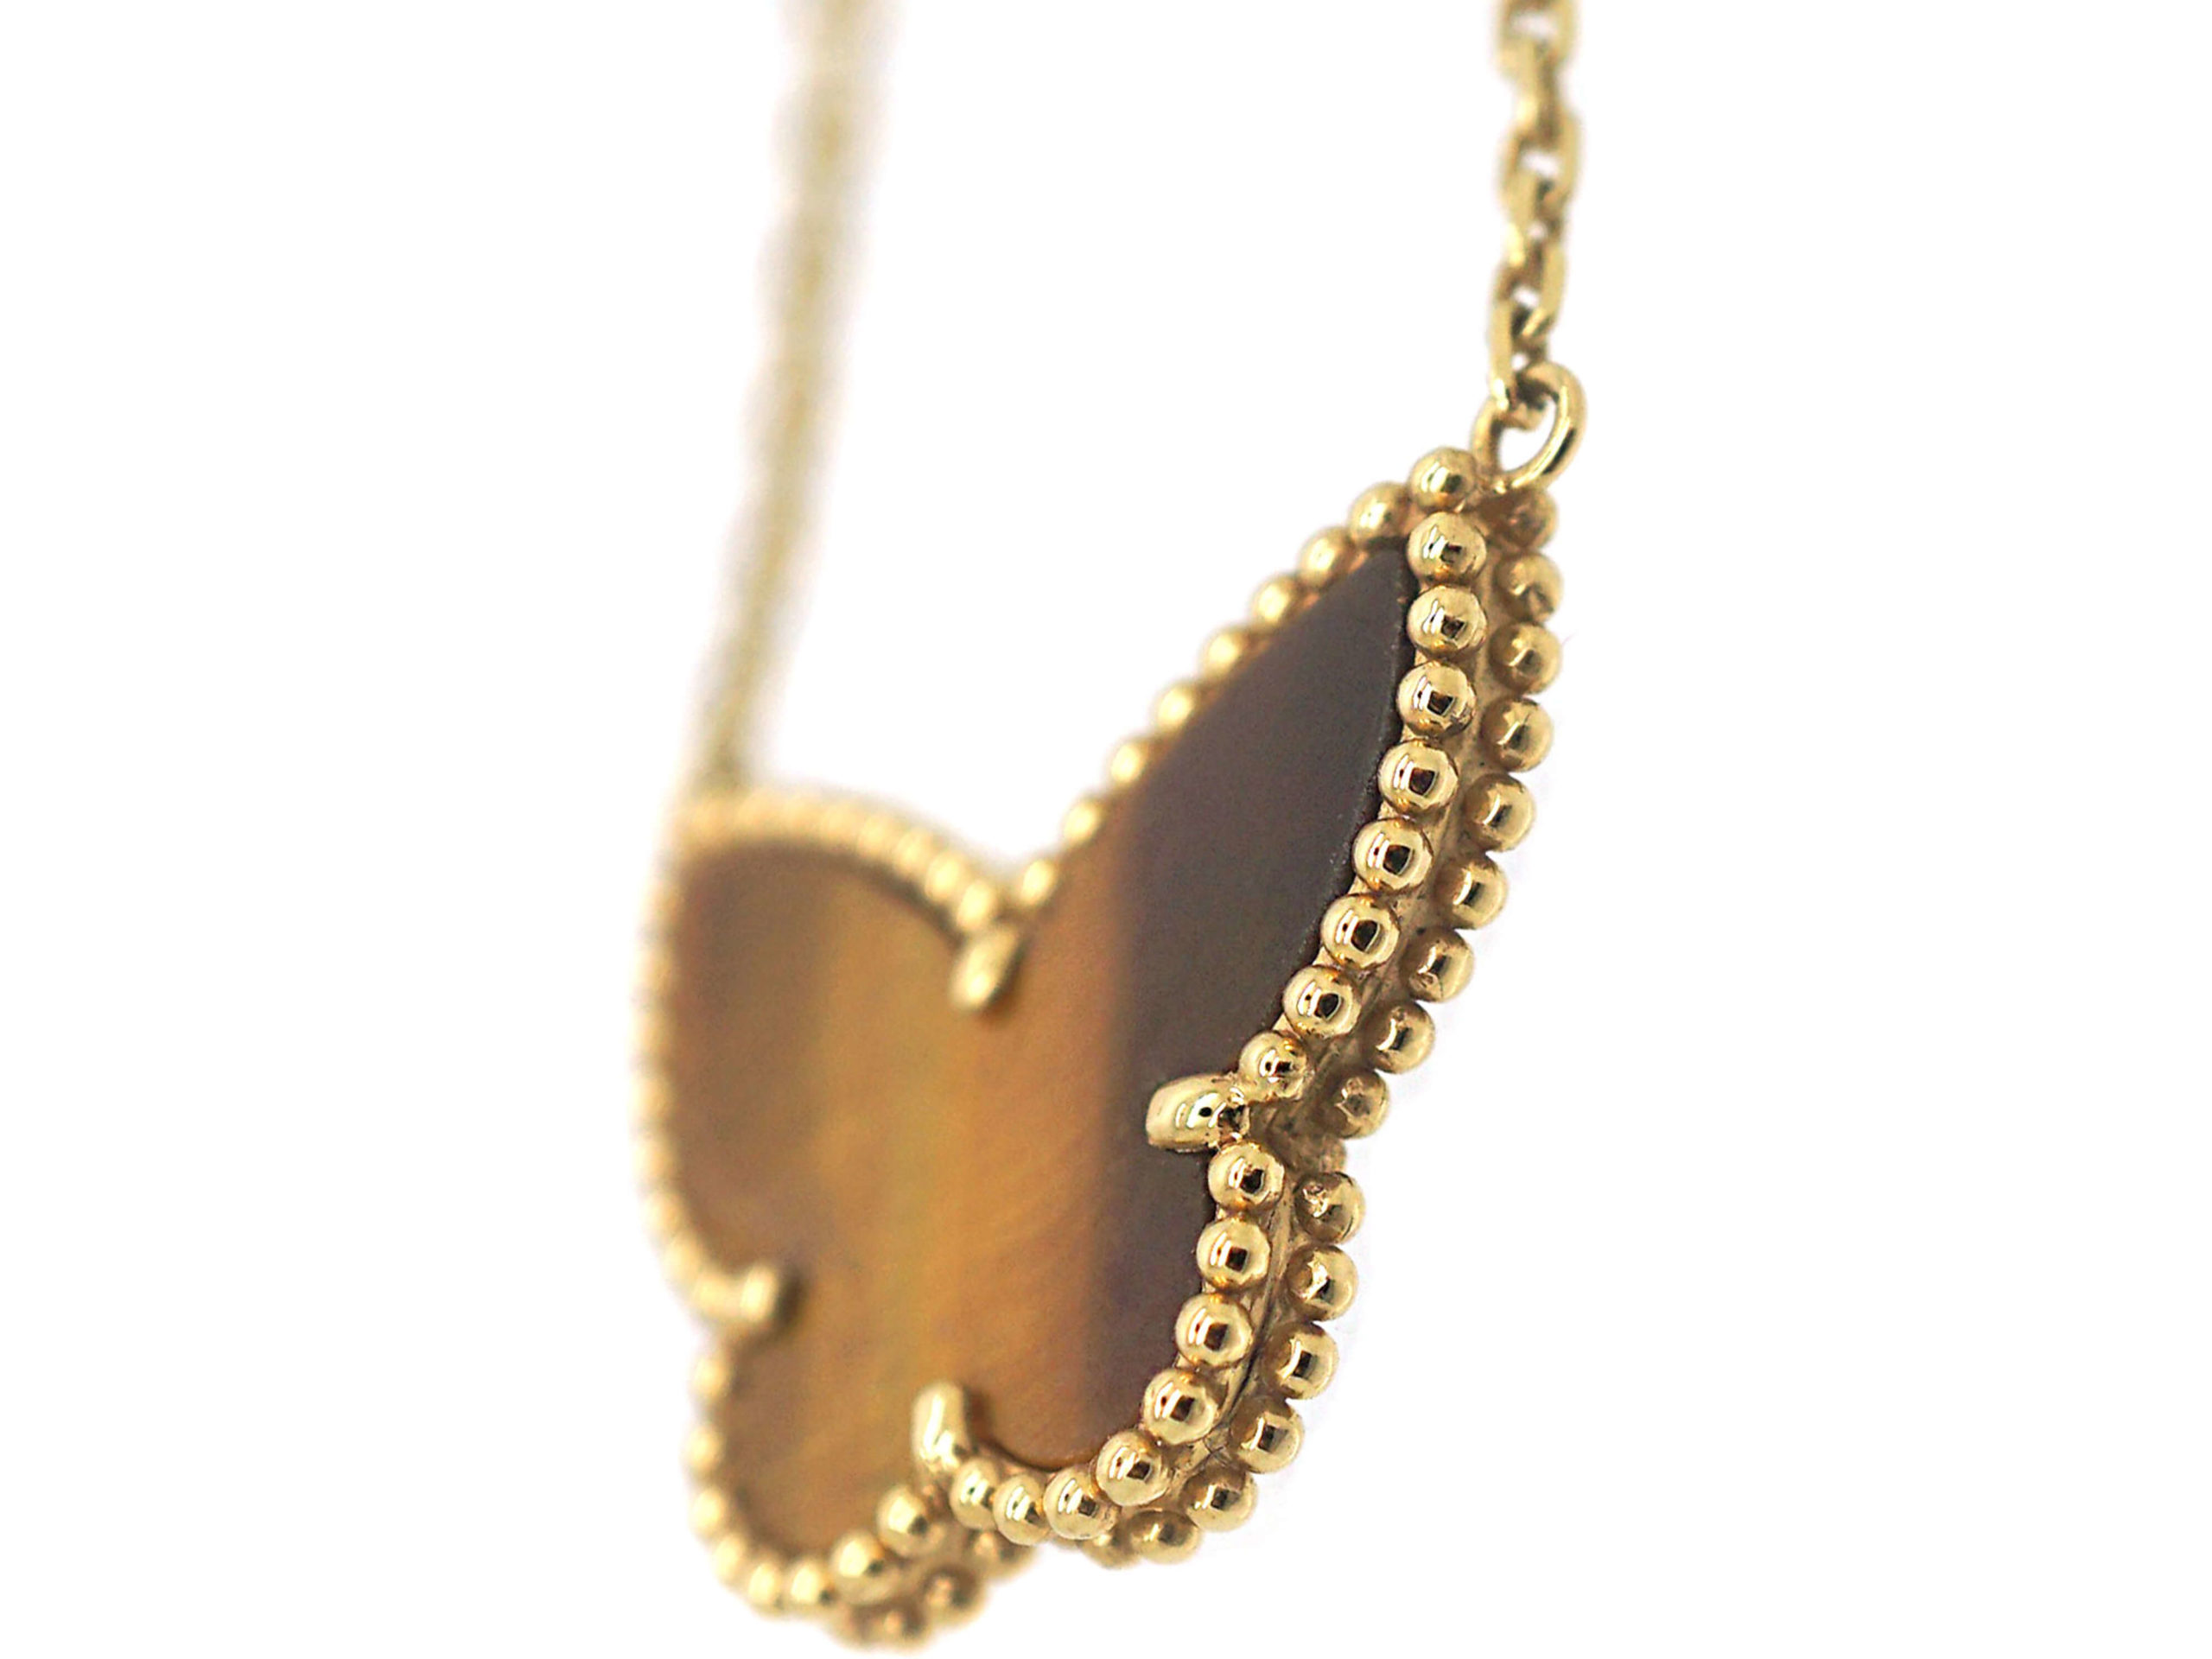 18ct Gold & Tiger's Eye Butterfly on 18ct Gold Chain by Van Cleef & Arpels